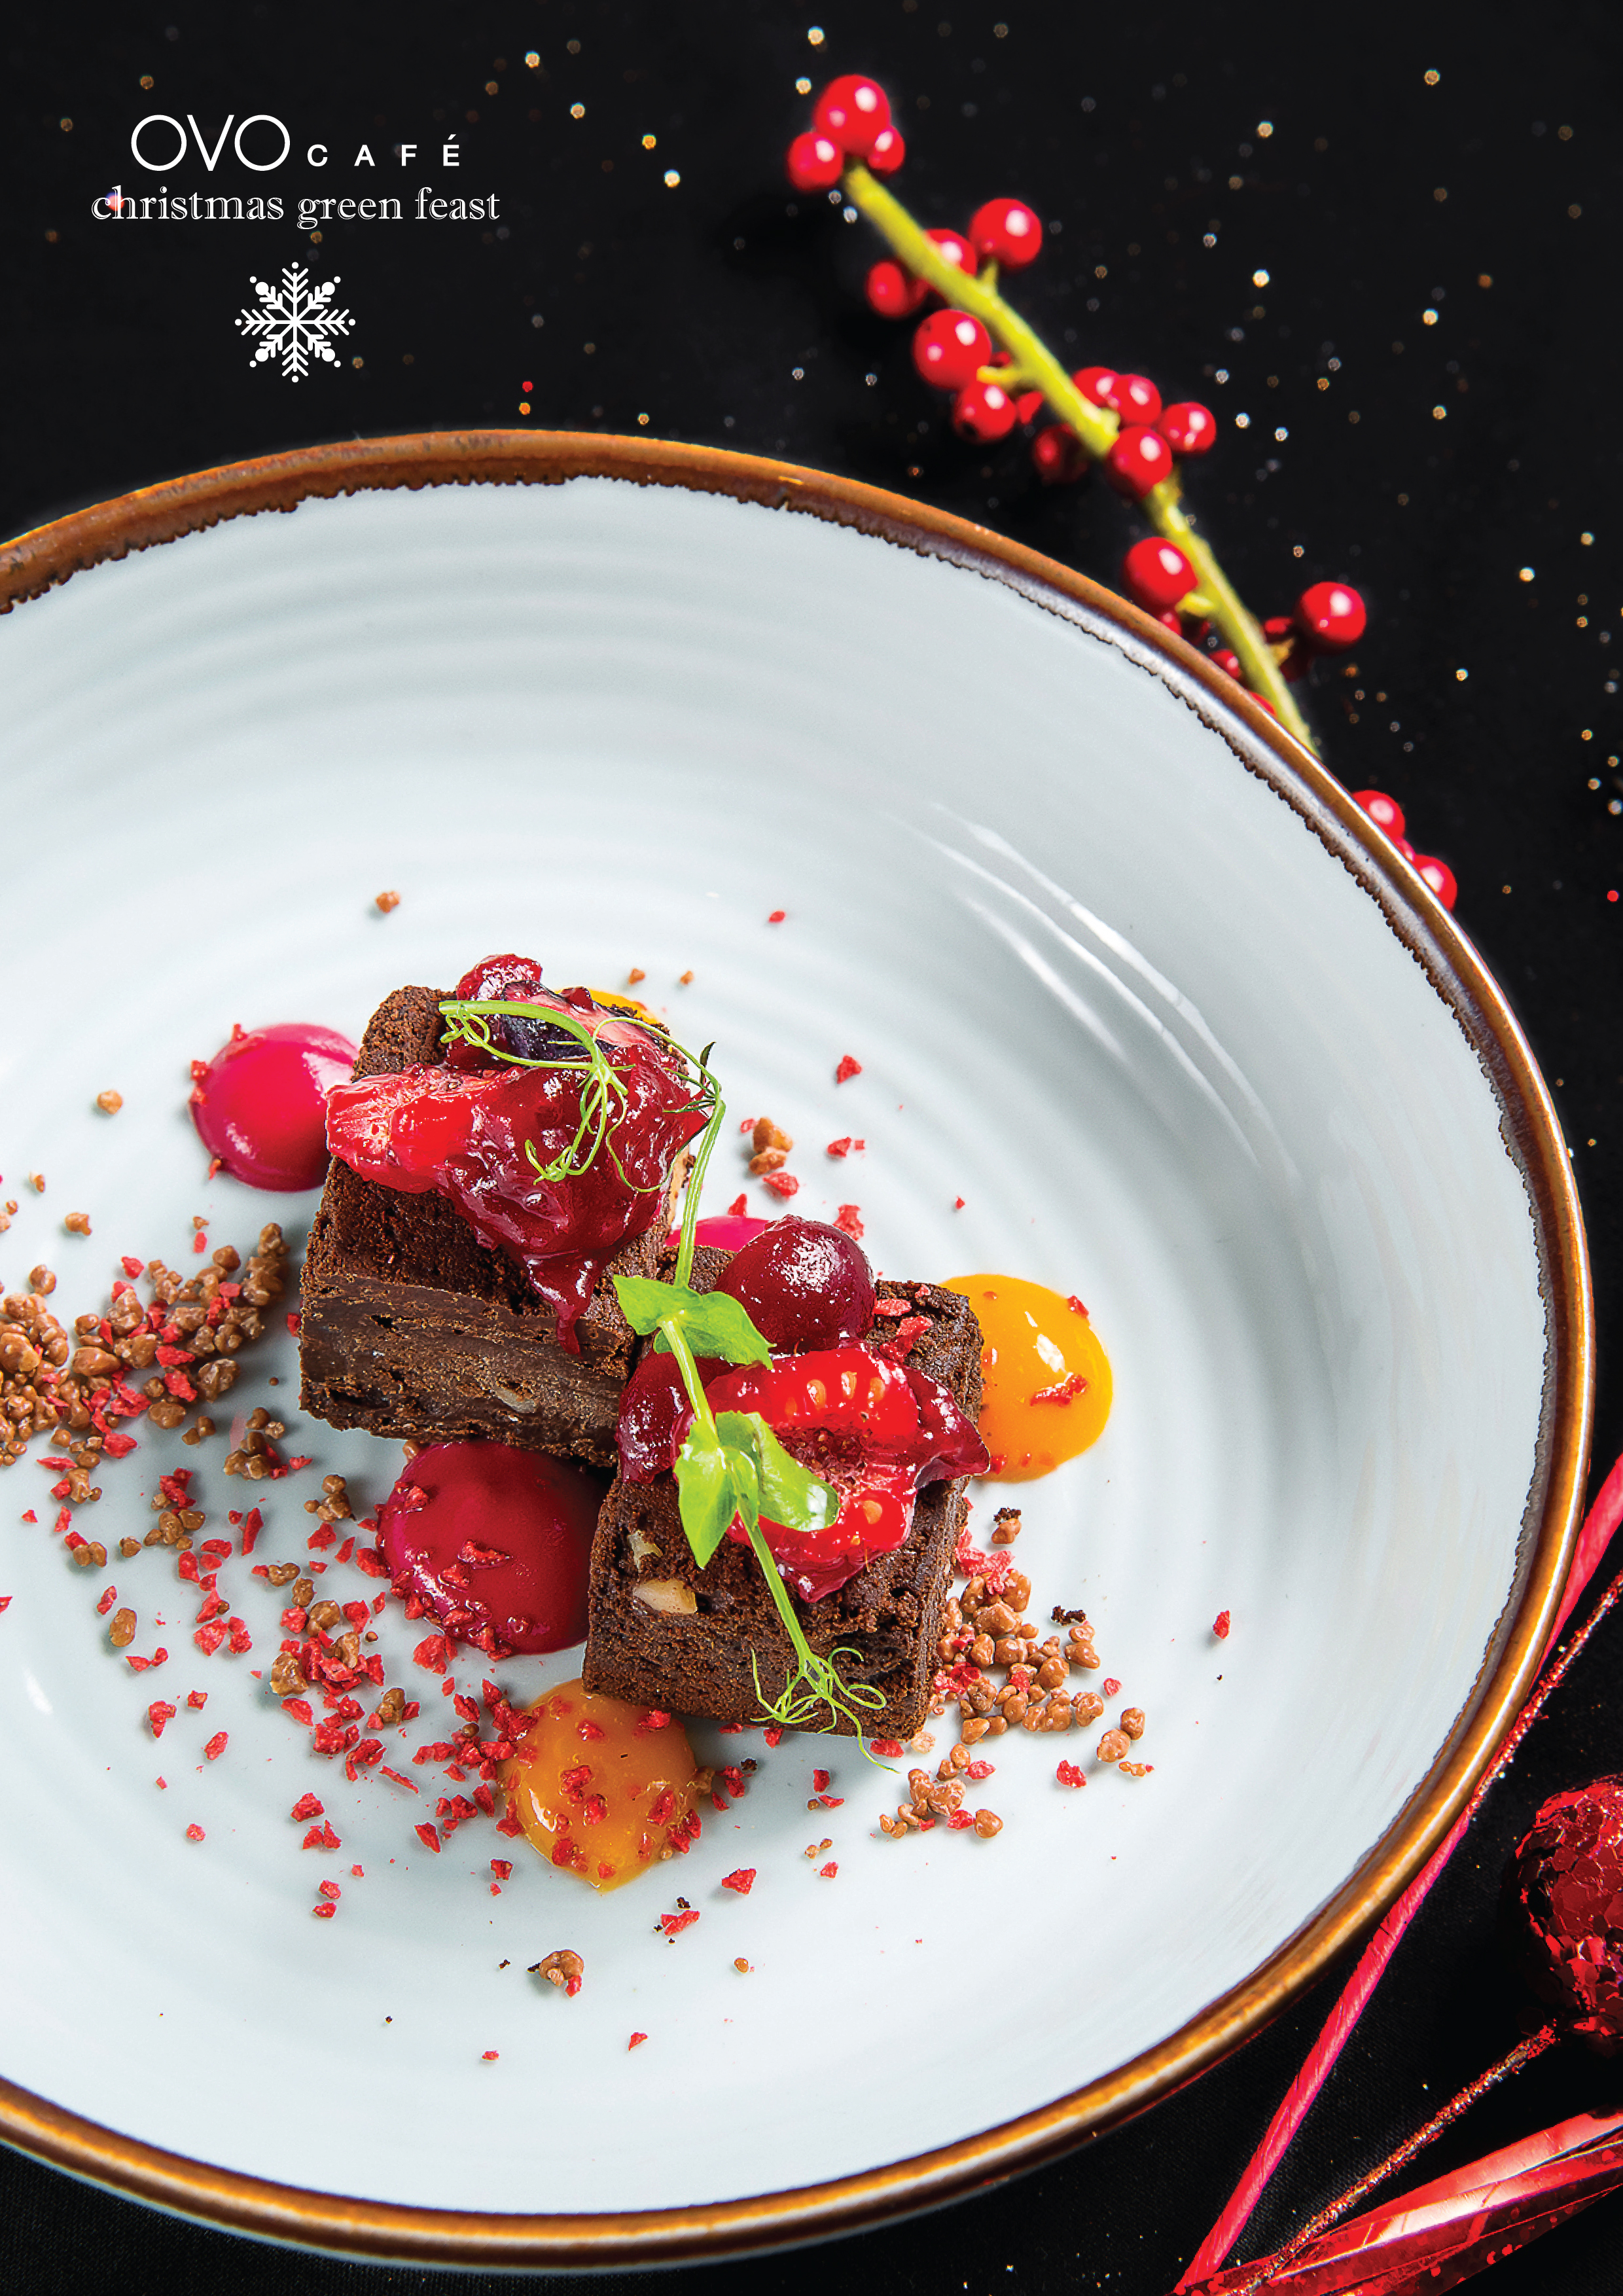 chocolate brownie with mixed berry and passion fruit sauce 朱古力蛋糕 配雜莓熱情果醬